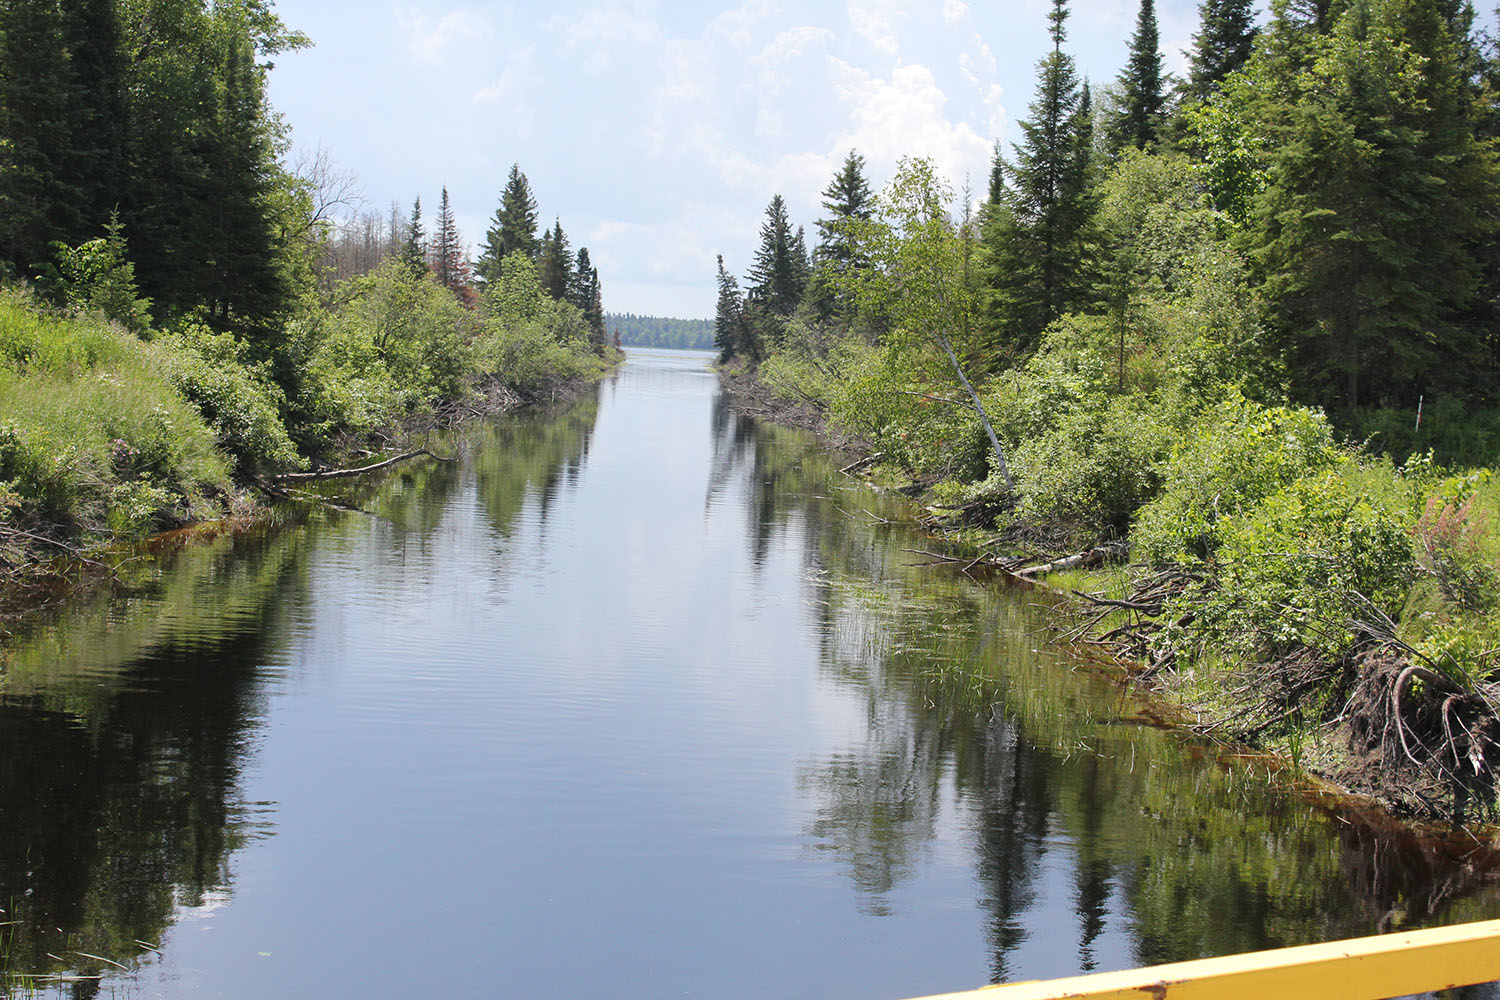 The canal that diverges water away from the aqueduct intake that turned the community of Shoal Lake 40 into an island.